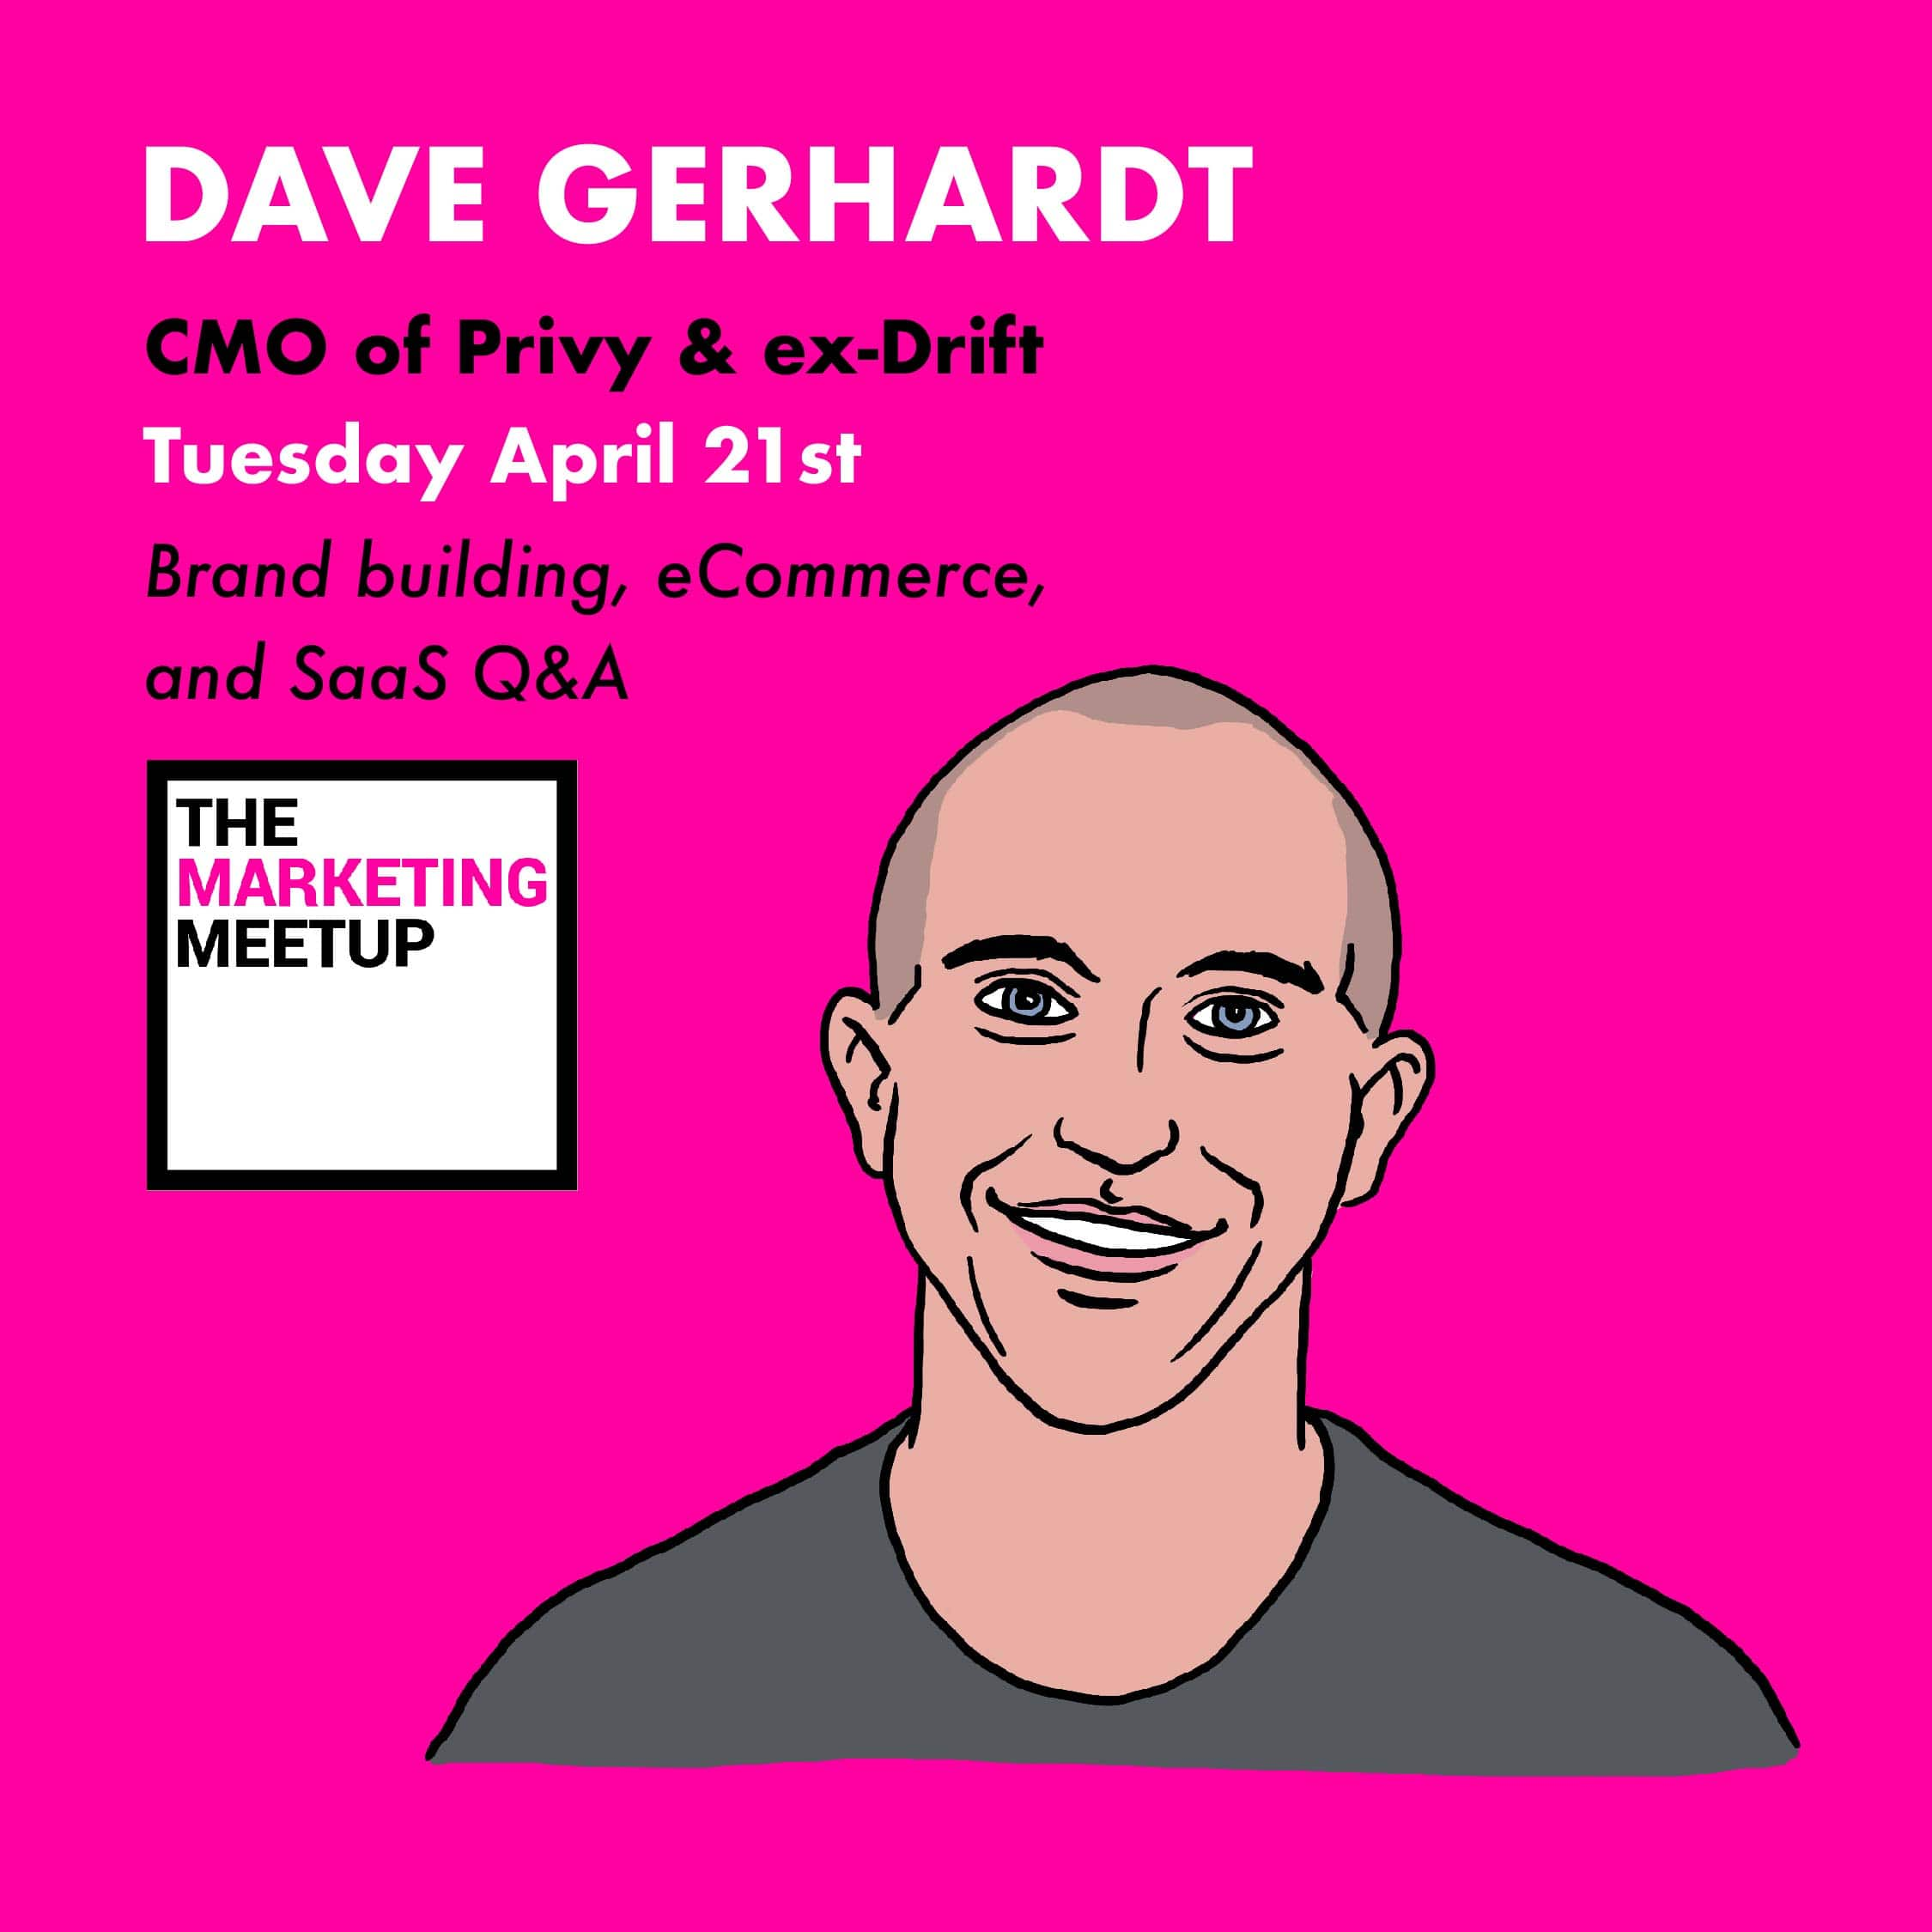 A comprehensive marketing Q&A with the CMO of Privy, Dave Gerhardt